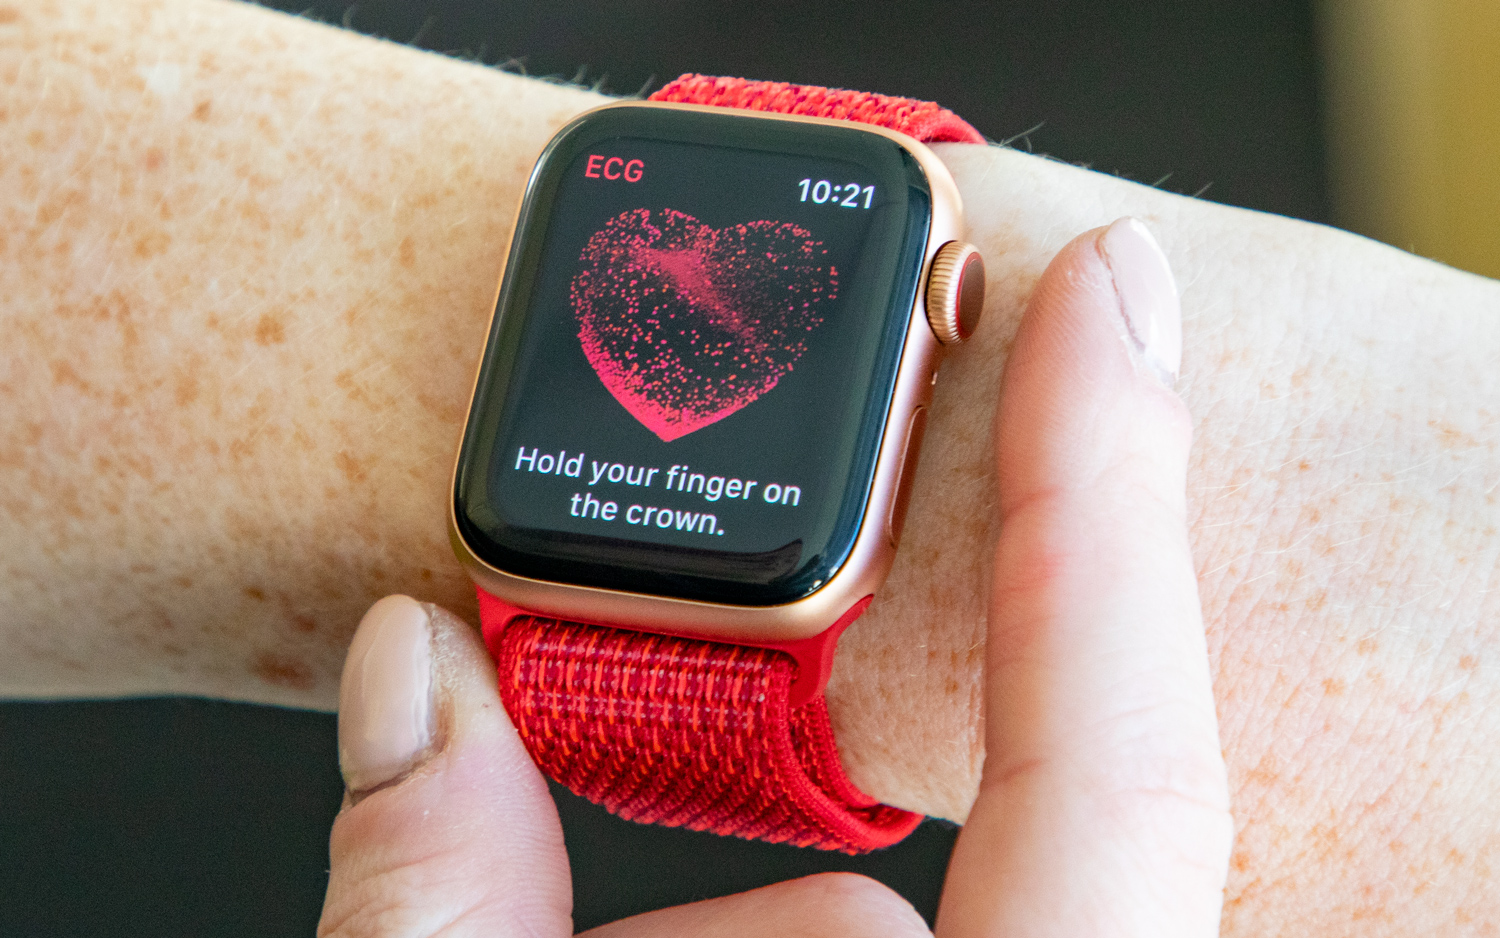 Apple Watch Series 4 Gets ECG App: Here's How to Use It